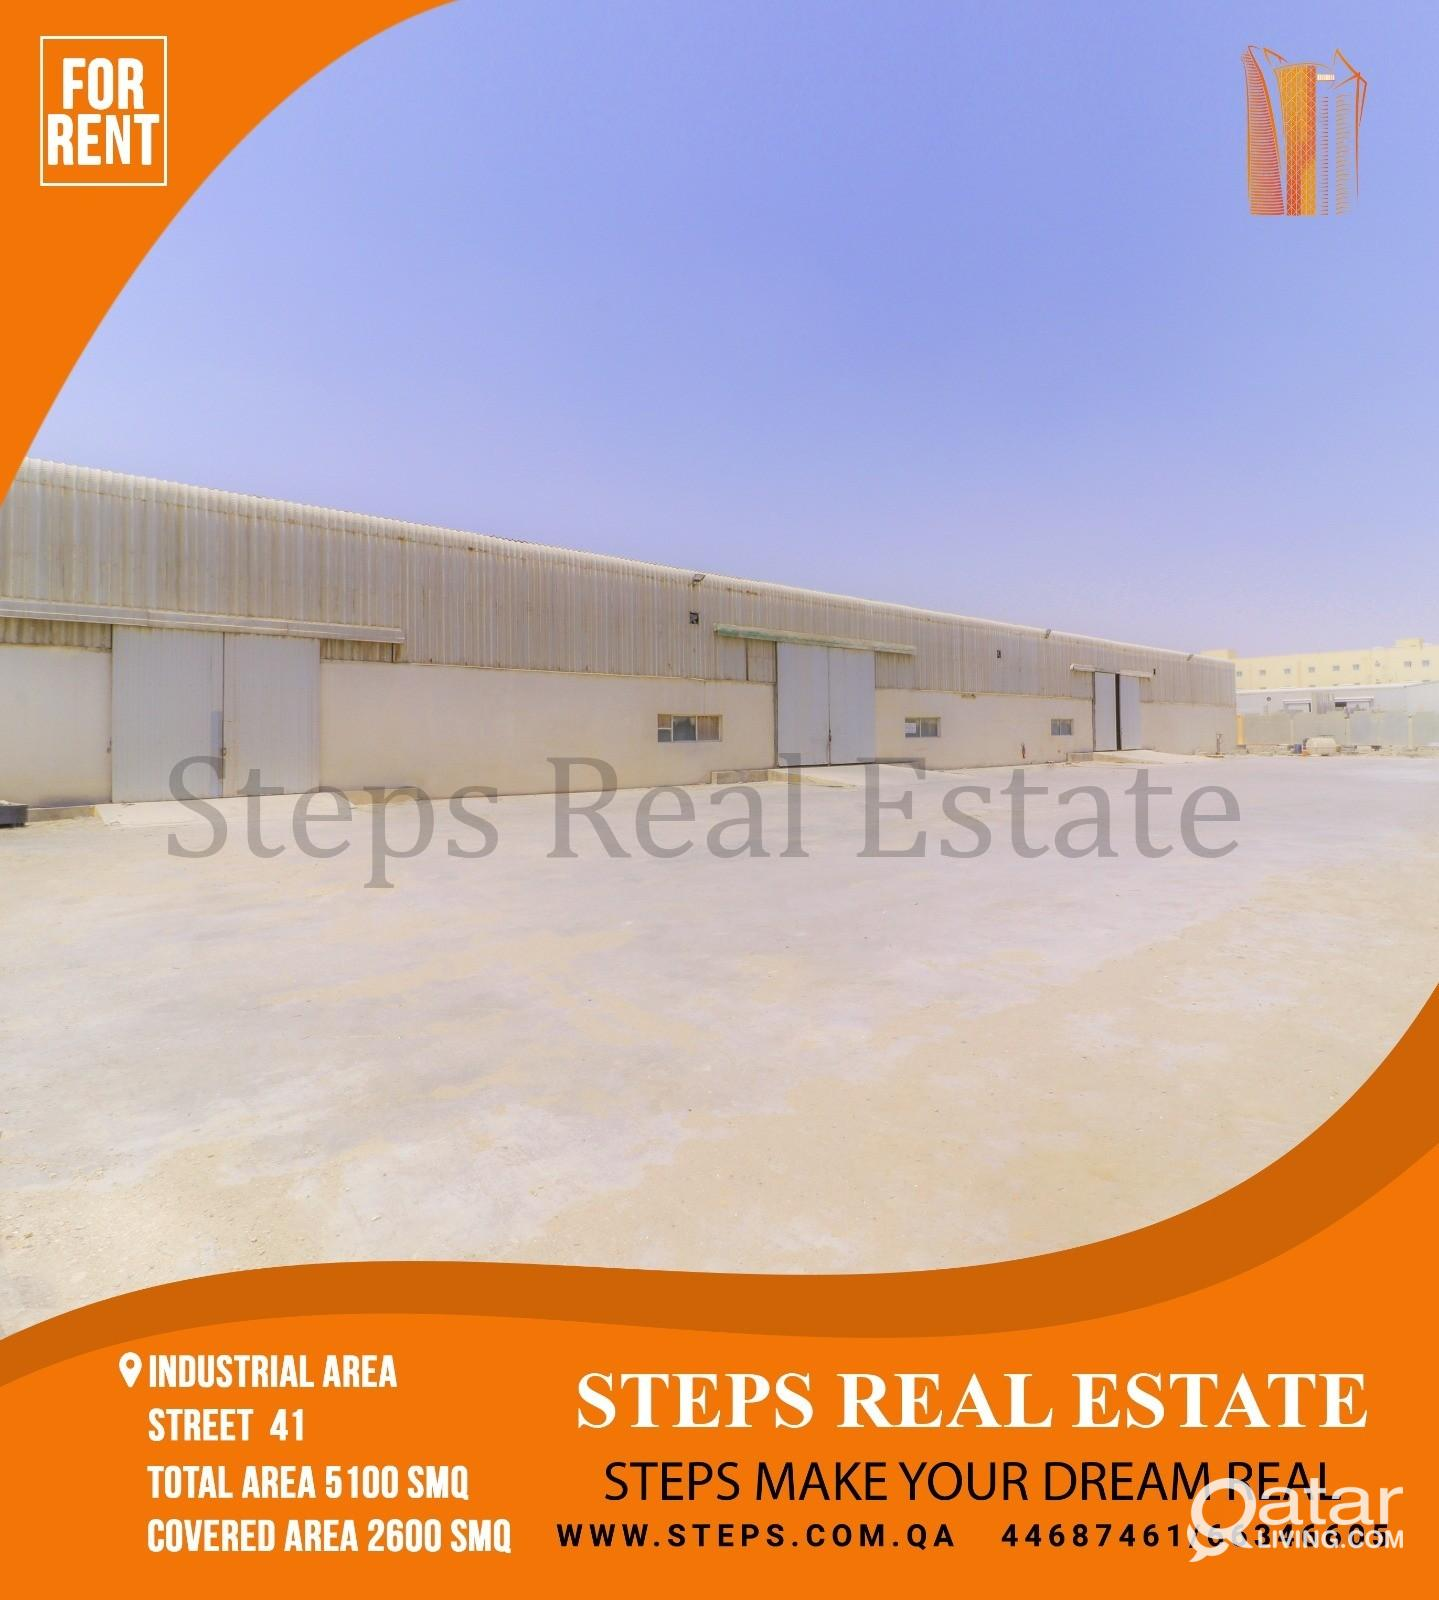 Approved 2600 SQM Store and 2500 Open Yard!